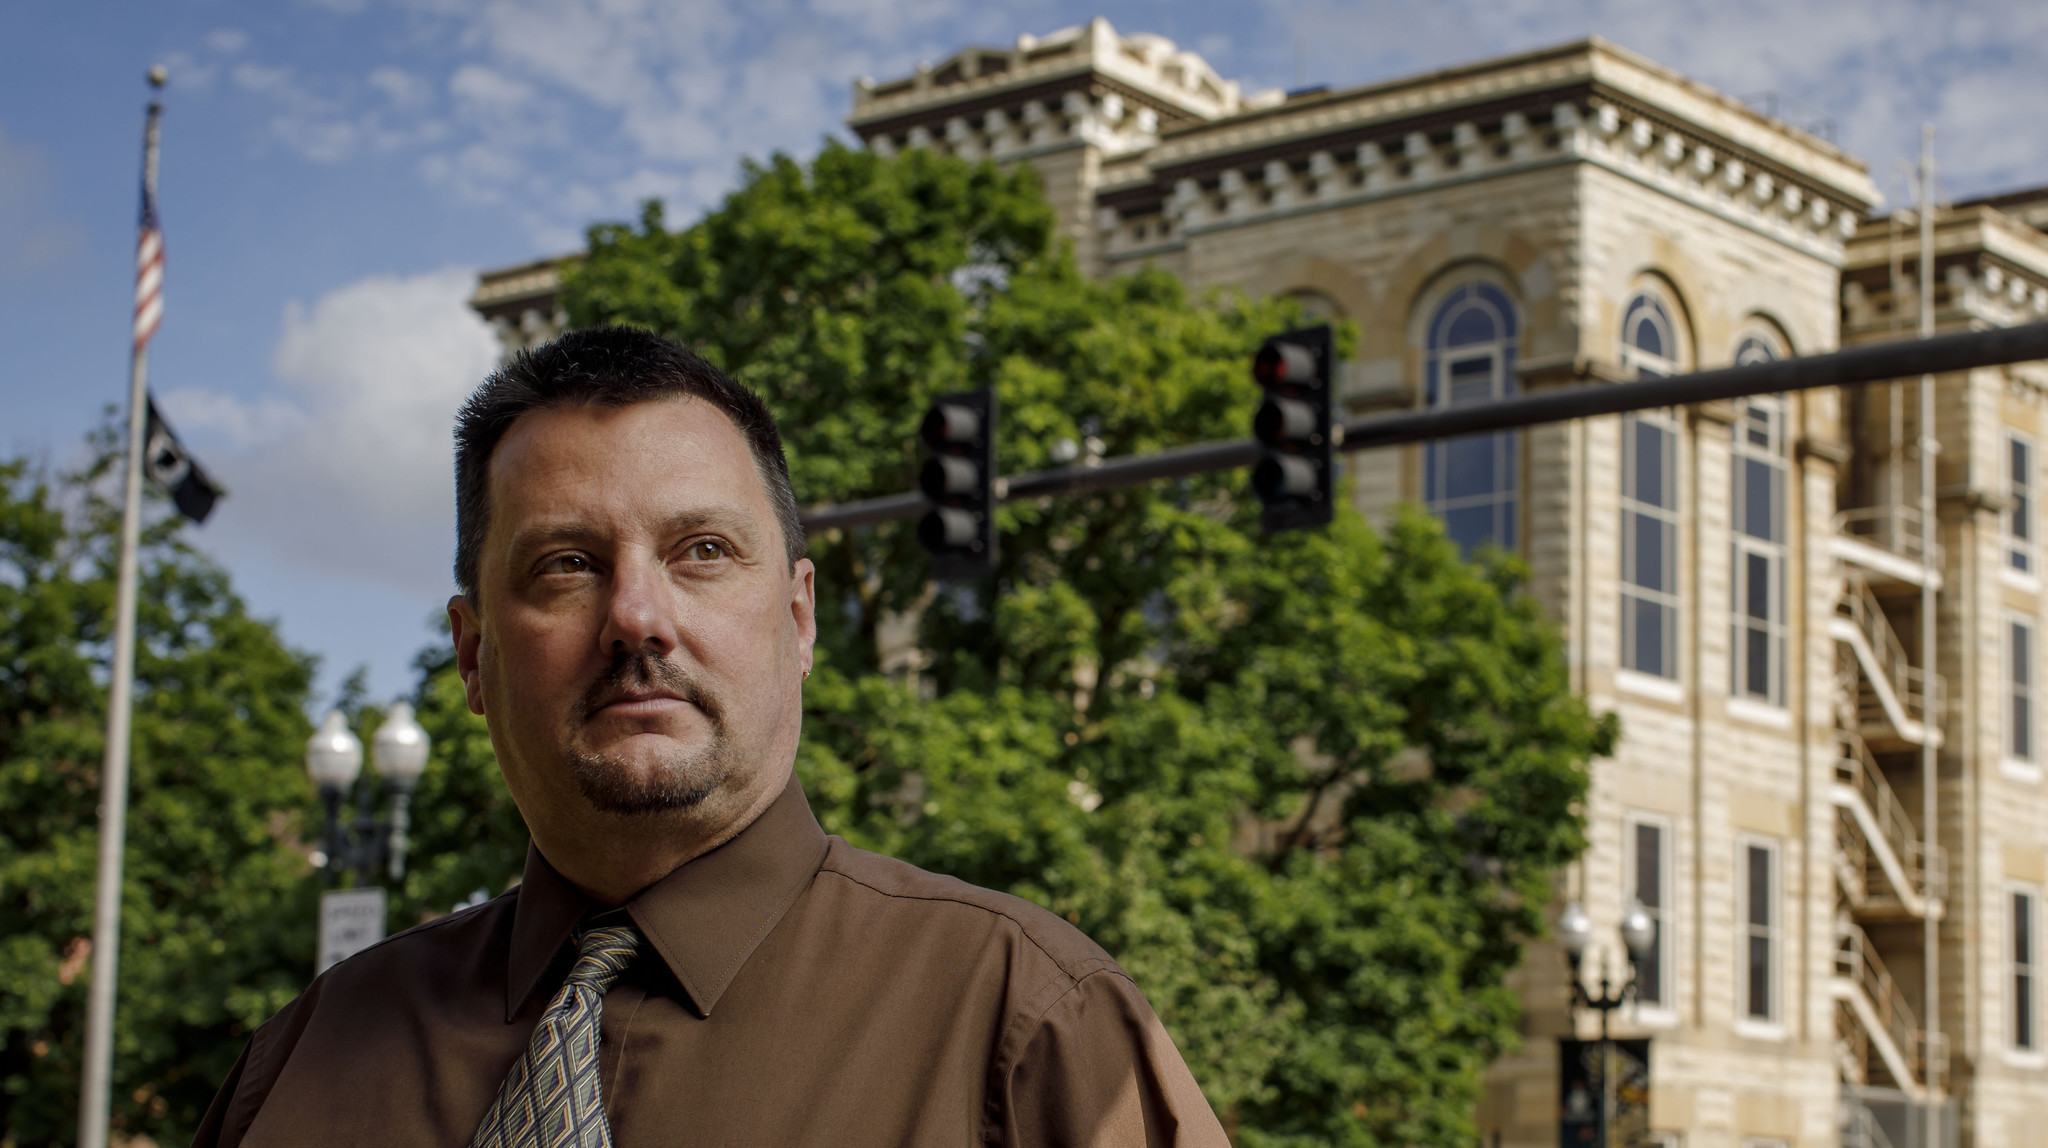 Small-town defense lawyer, shaken by client's overdose